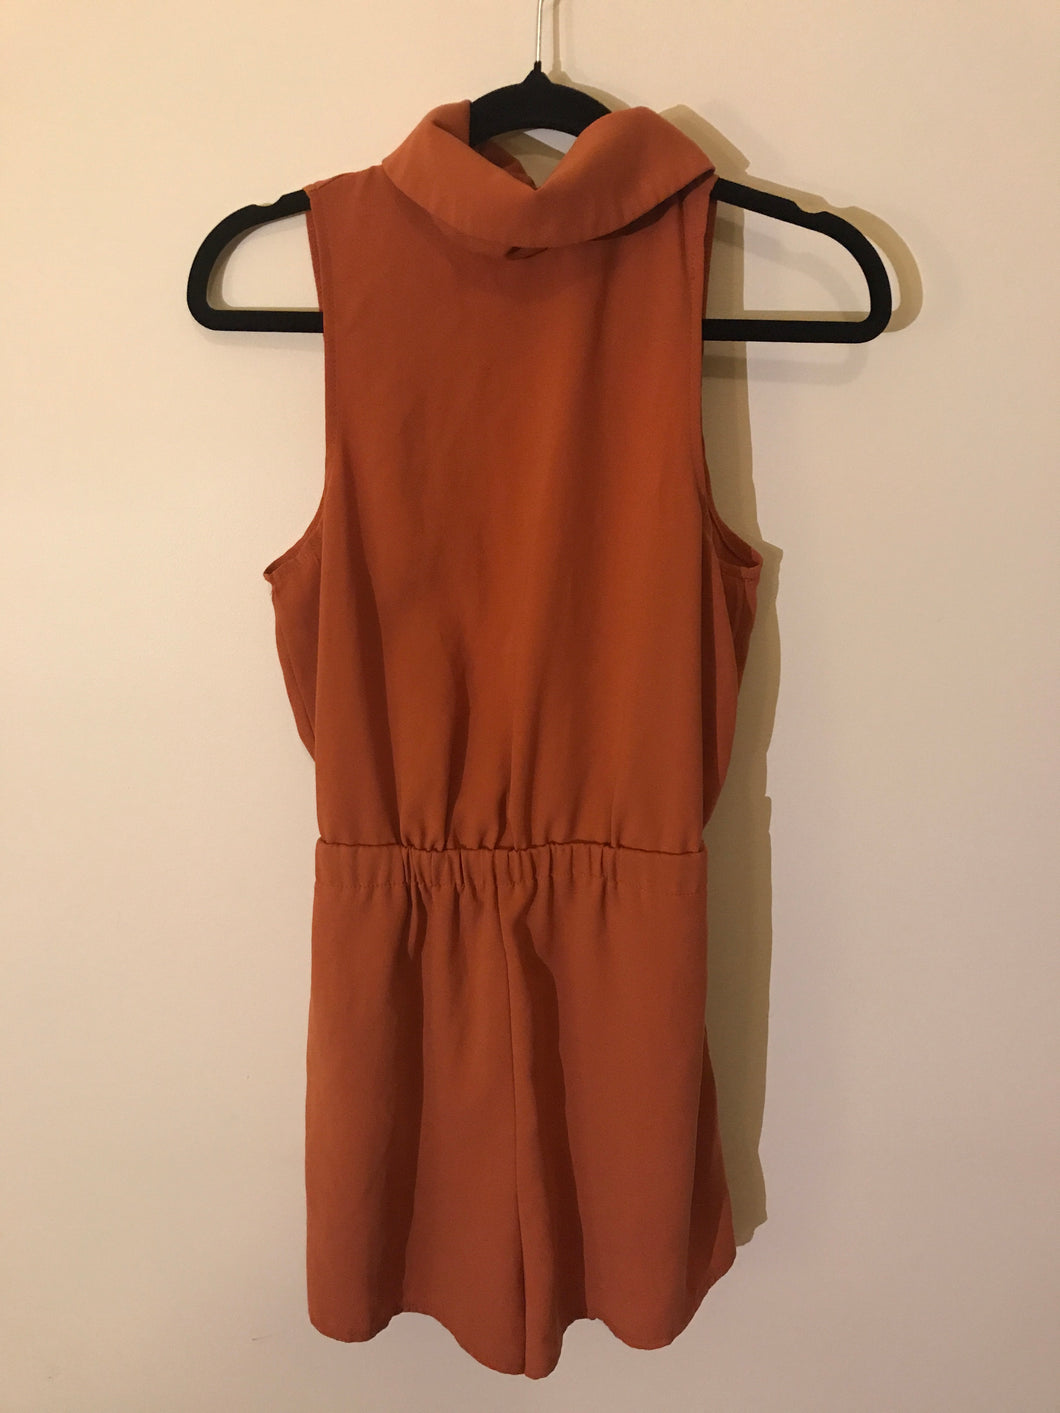 Luvalot brown slit-back jumpsuit Size 8